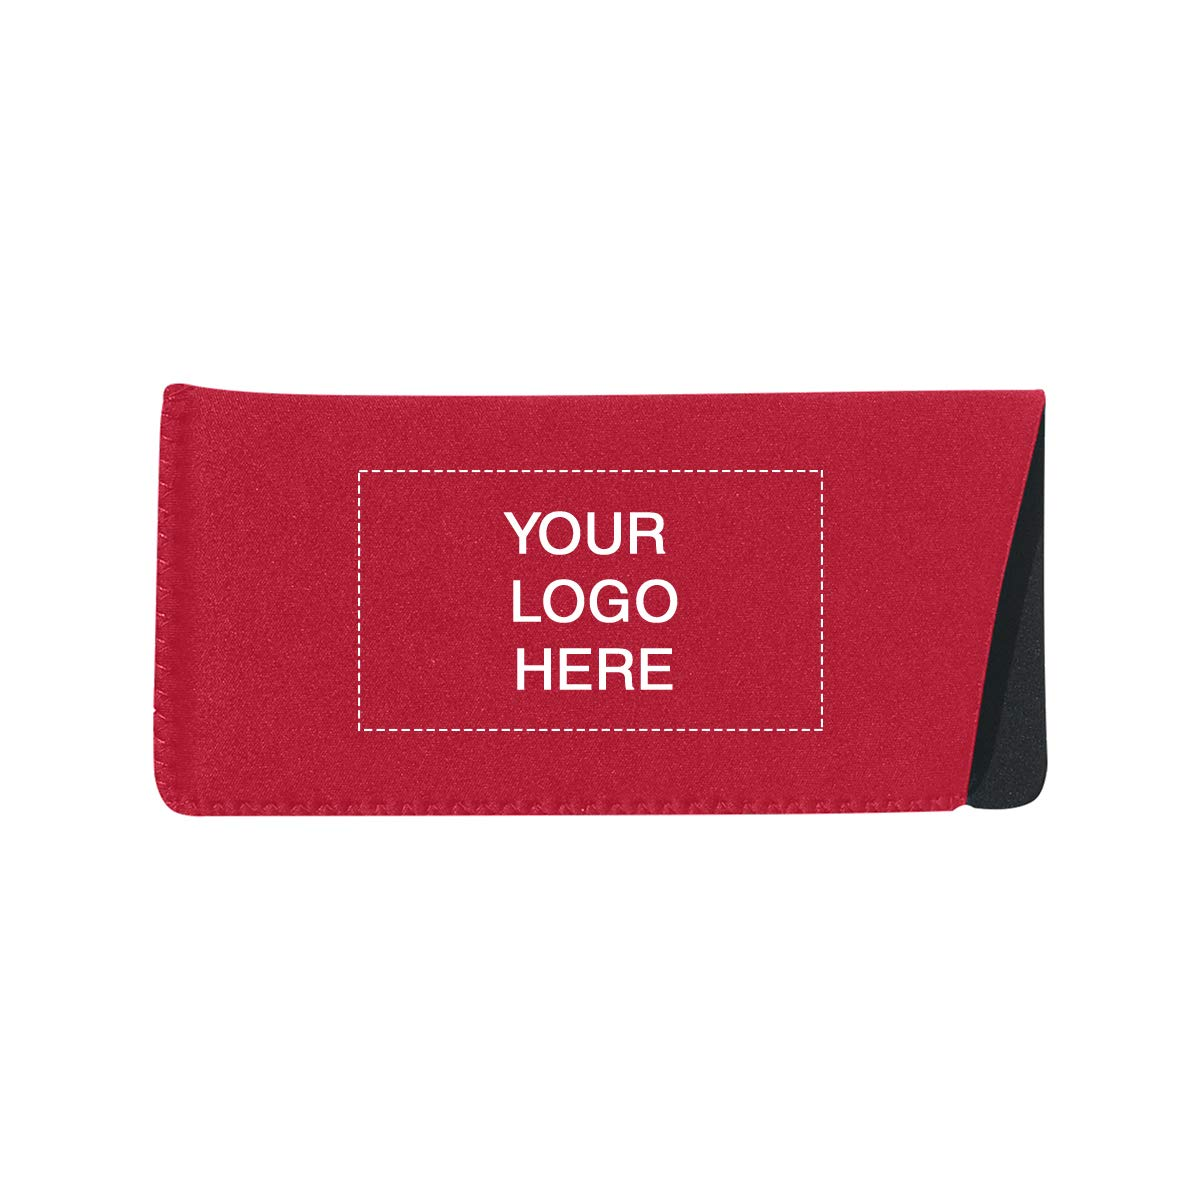 Neoprene Eyeglasses Case | 100QTY | 2.03Per | Customization case Red by Promo Direct